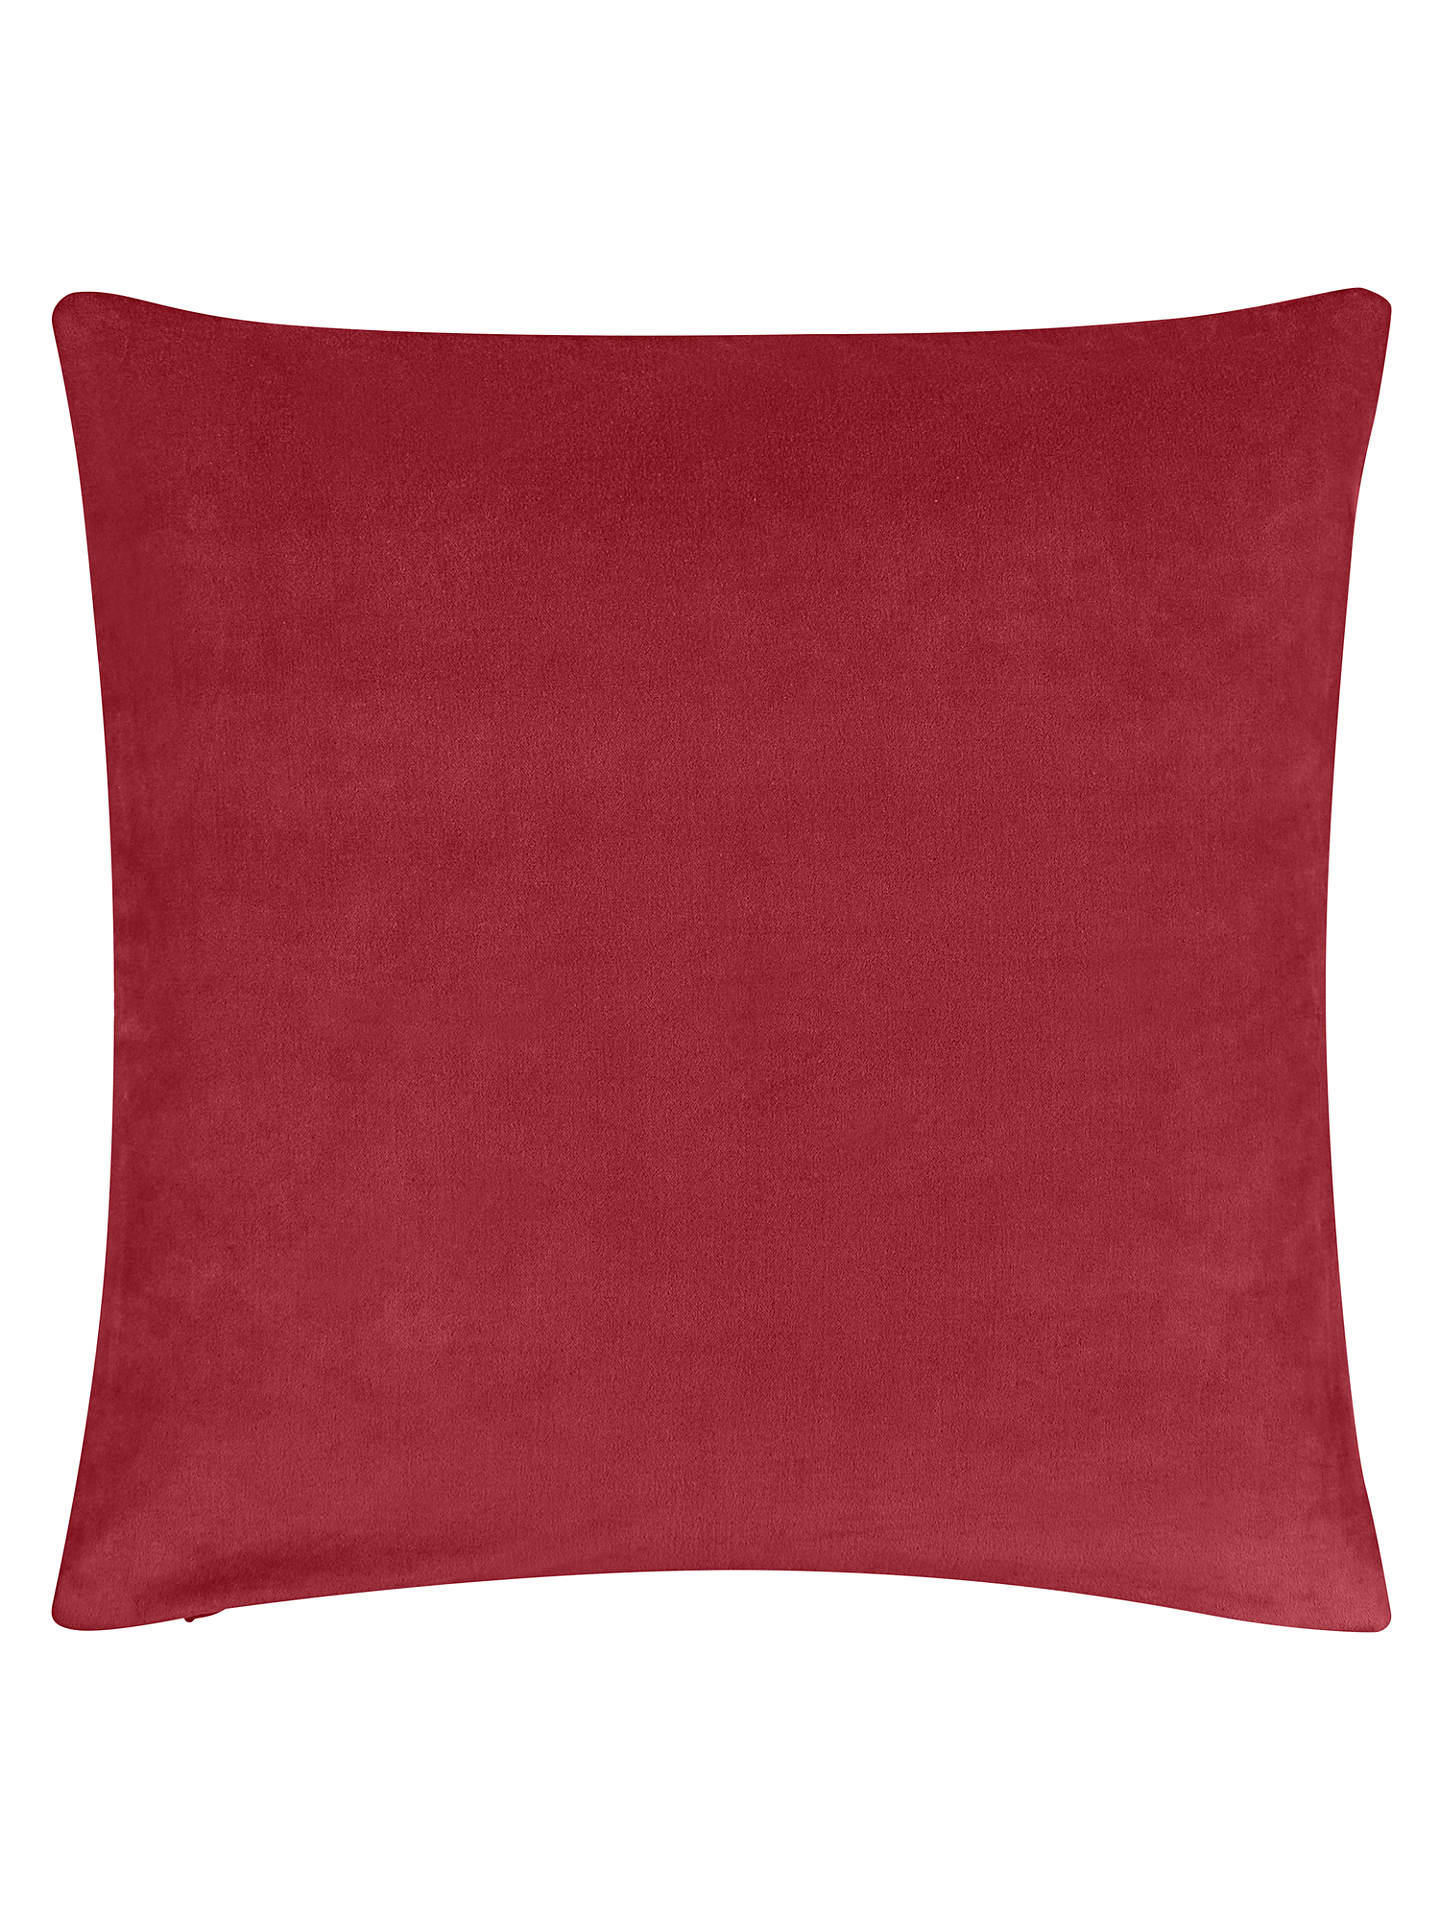 Buy John Lewis & Partners Cotton Velvet Cushion, Claret Online at johnlewis.com